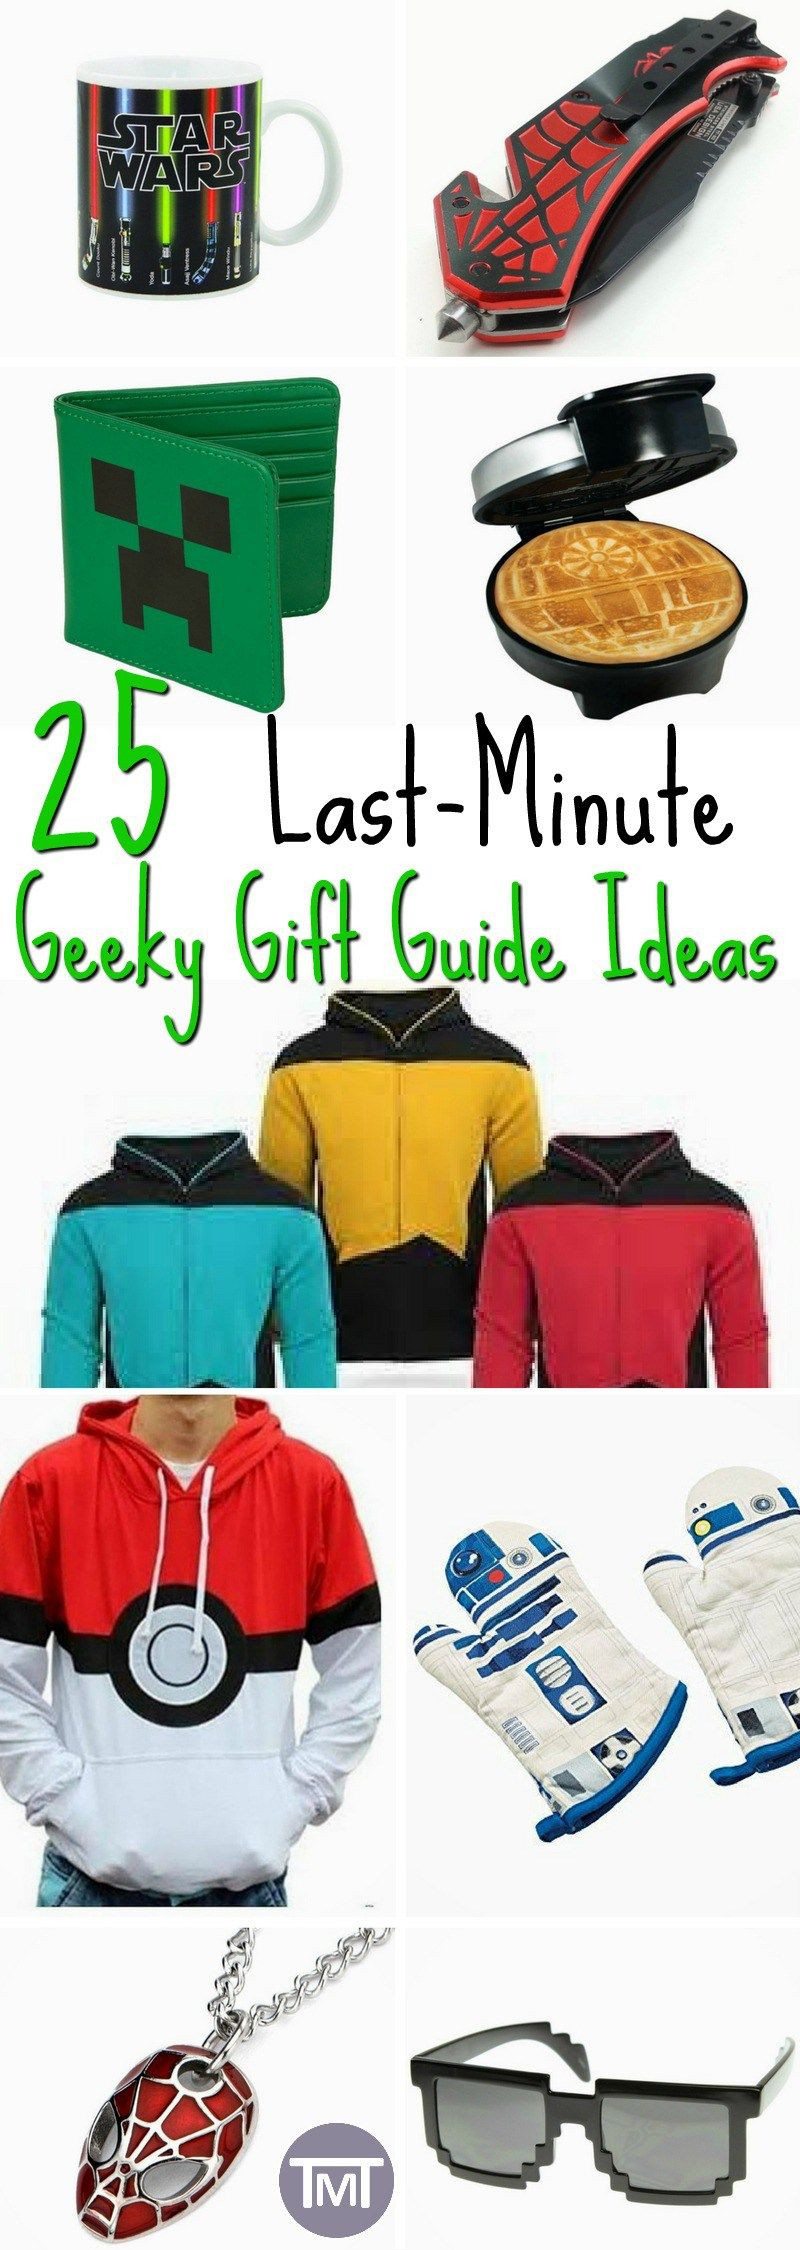 Geek Gifts For Kids  25 Last Minute Geeky Gift Guide Ideas